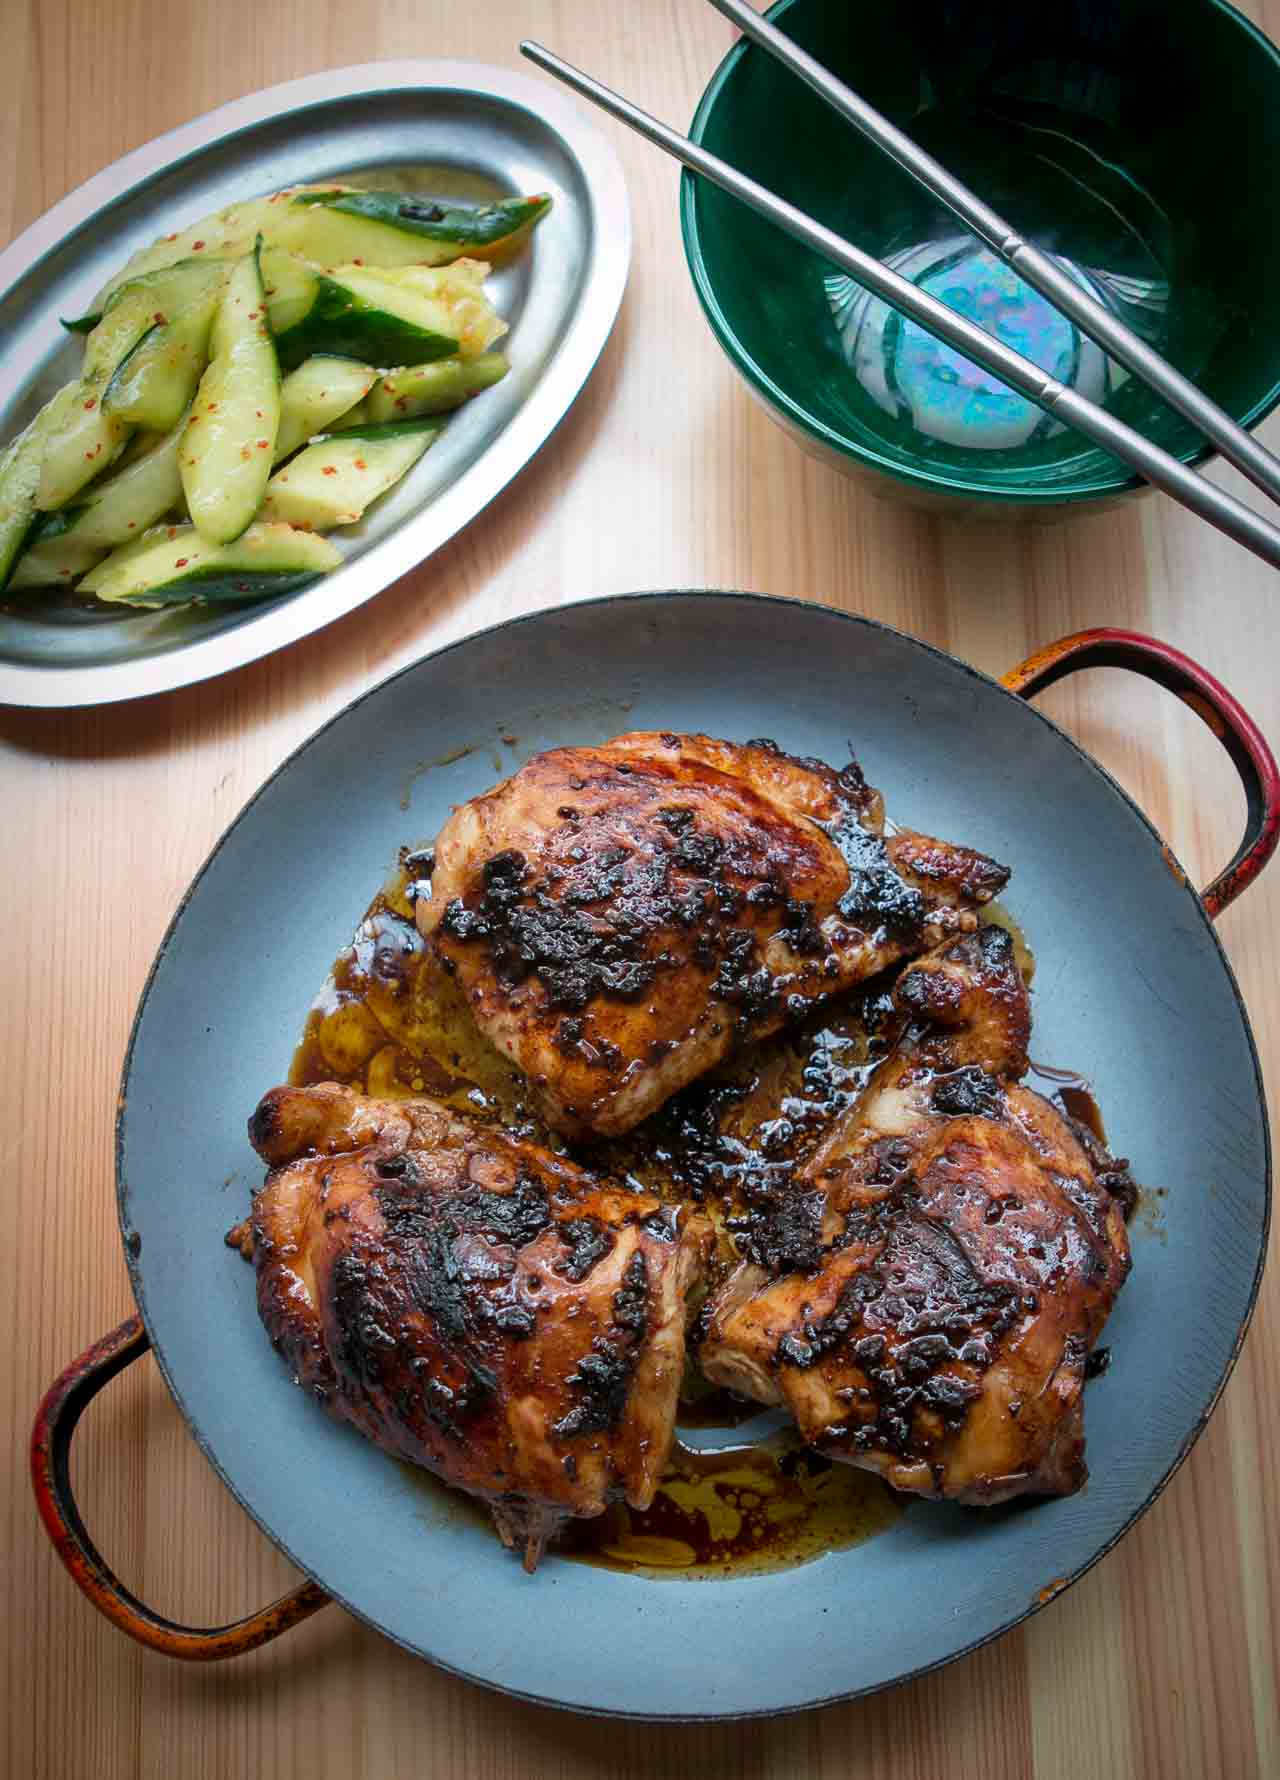 Olympic seoul chicken recipe david lebovitz forumfinder Image collections